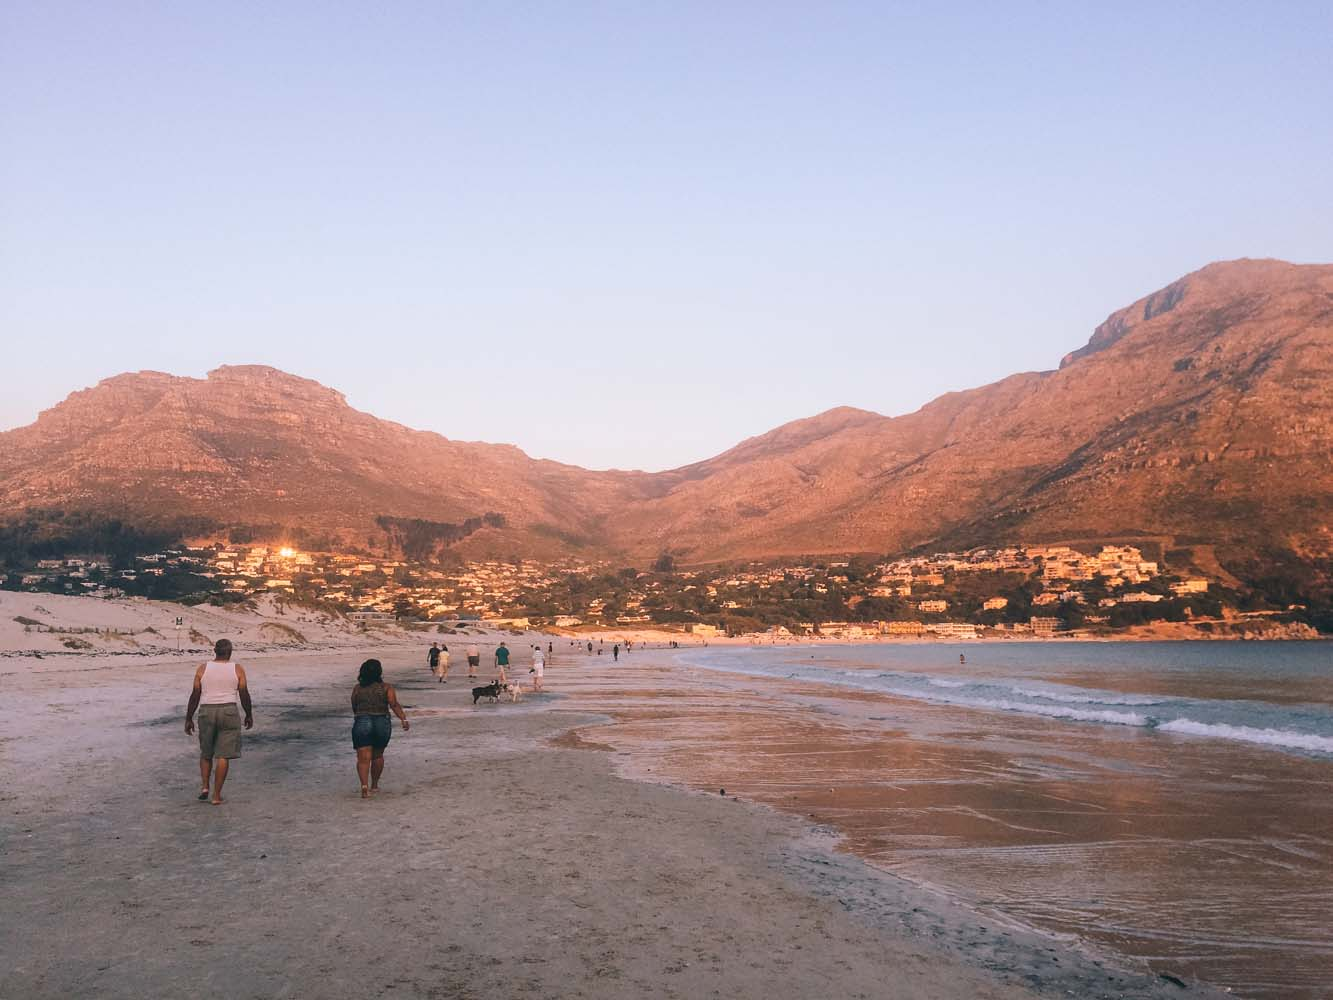 Looking for a unique place to stay and explore during your Cape Town holiday? Check out Hout Bay, Cape Town, a residential seaside suburb with stunning nature and a lively fishing harbor.